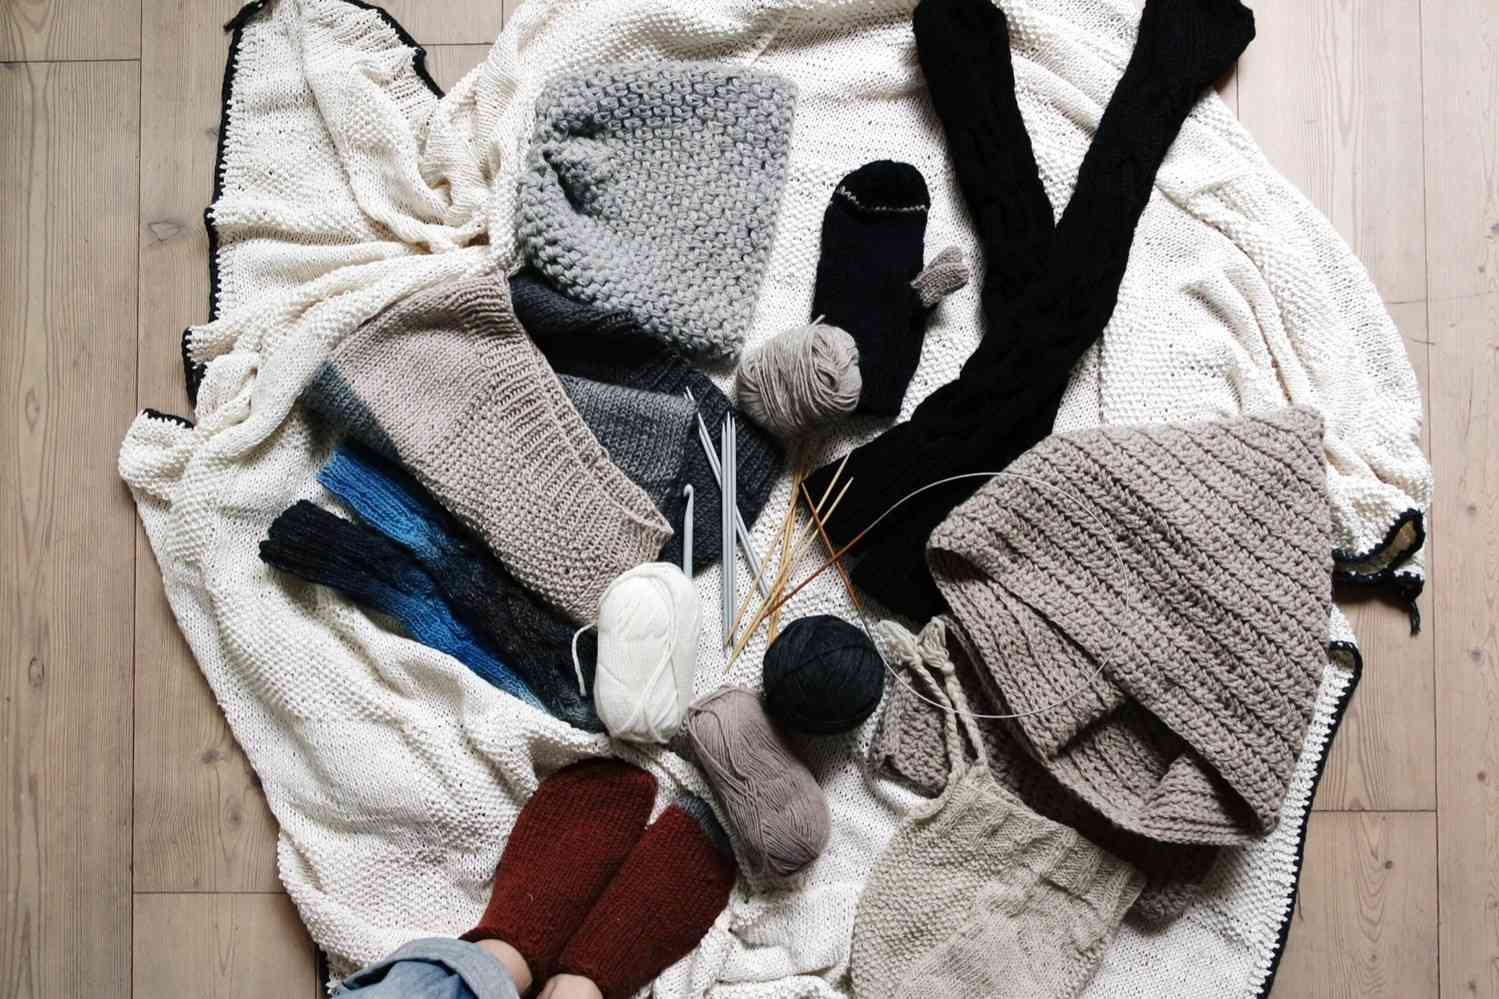 Crocheted clothing and accessories adds to any wardrobe